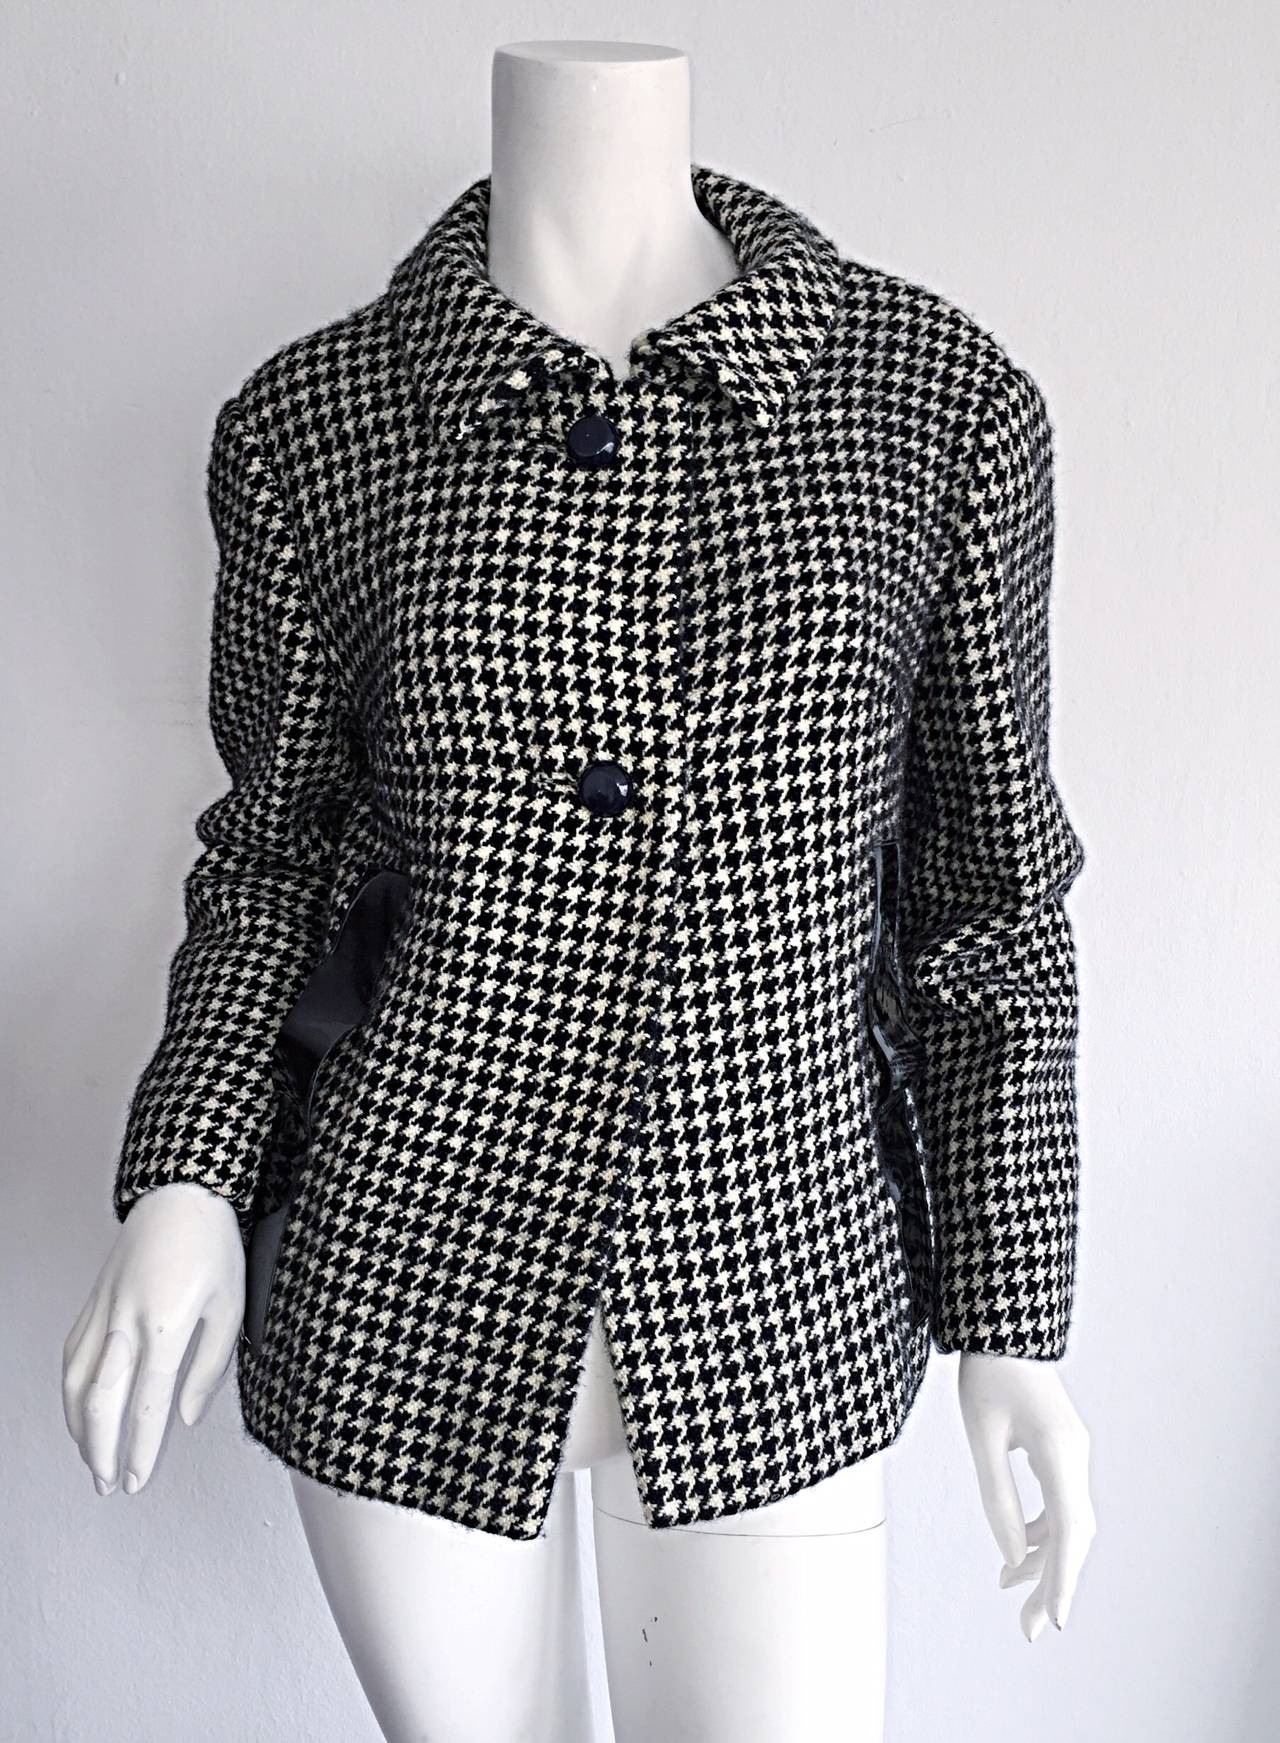 1960s Pierre Cardin Black + White Houndstooth Space Age Jacket In Excellent Condition For Sale In Chicago, IL